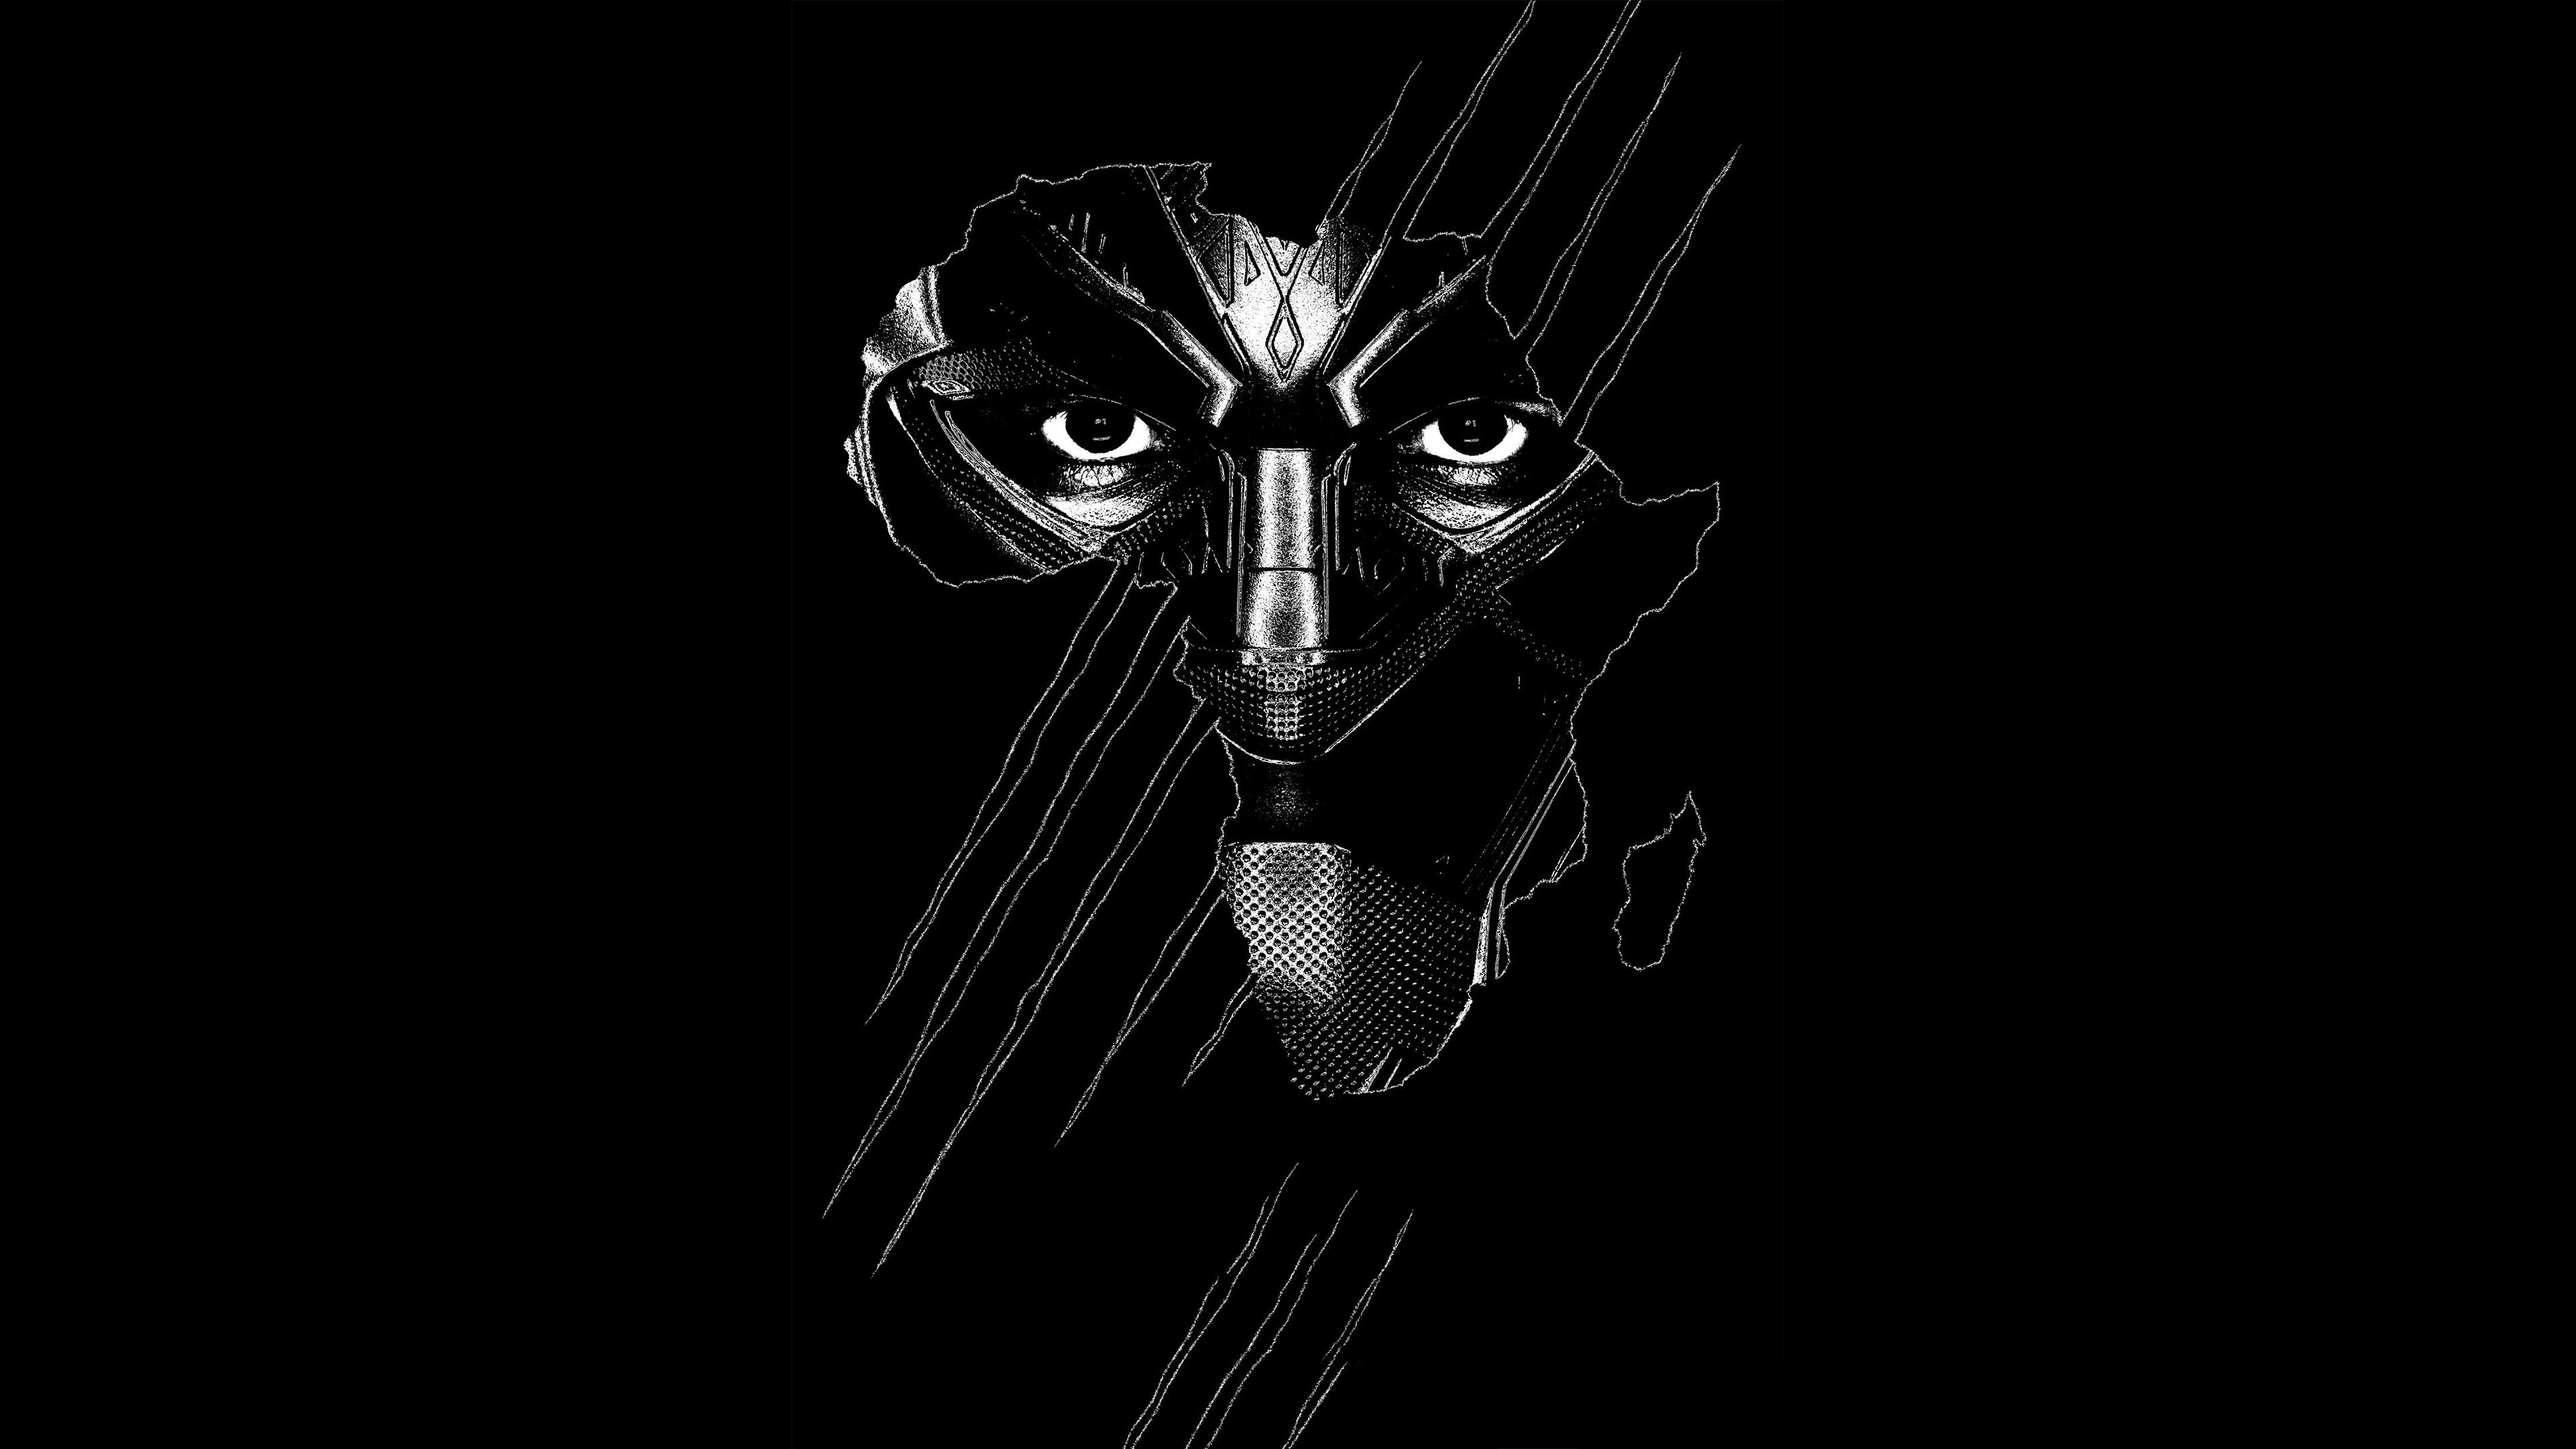 Black Panther 3d Wallpapers Top Free Black Panther 3d Backgrounds Wallpaperaccess